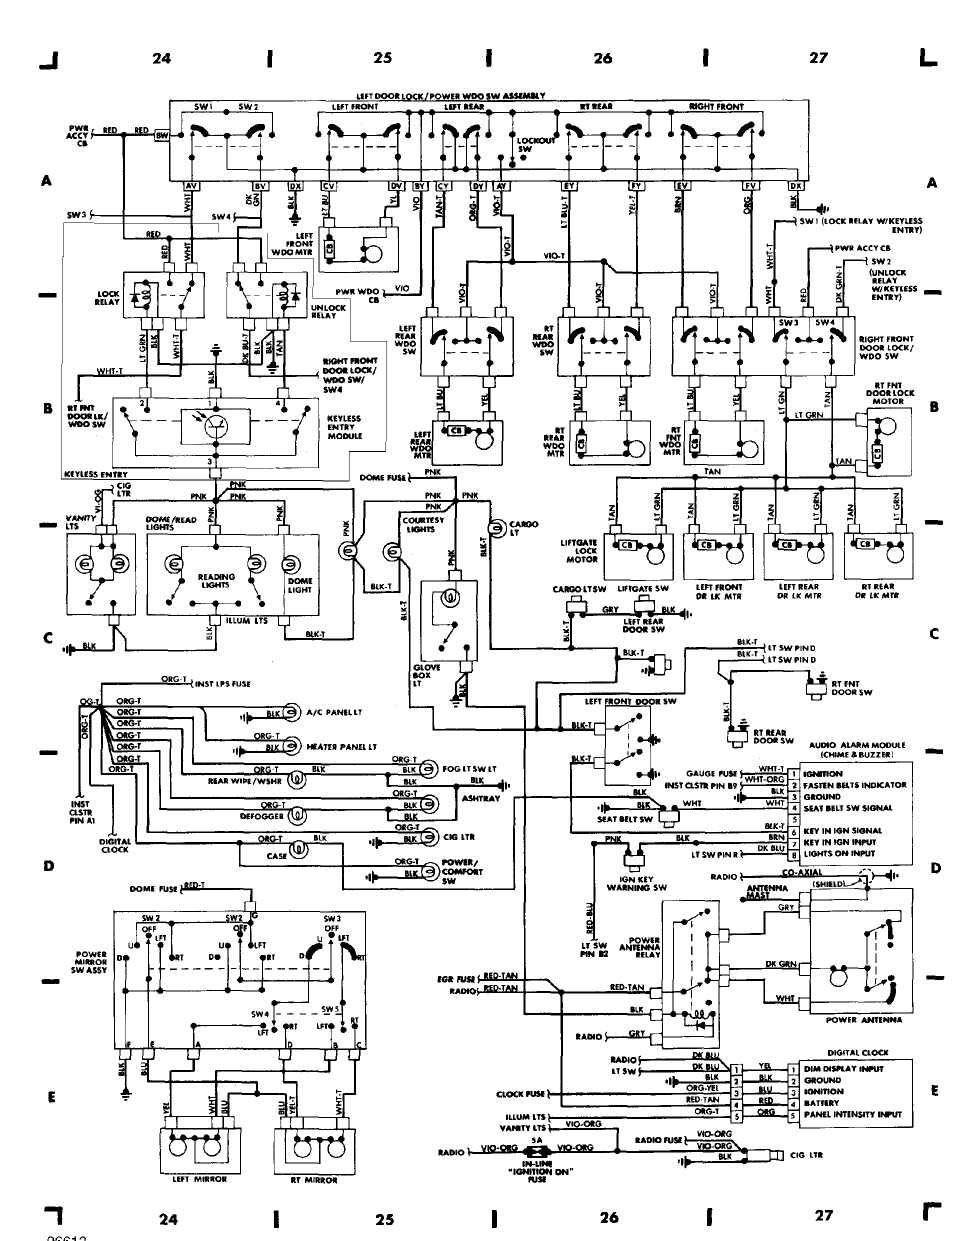 wiring_diagrams_html_61f5e0ad wiring diagrams 1984 1991 jeep cherokee (xj) jeep wiring diagram for 2000 jeep wrangler at panicattacktreatment.co